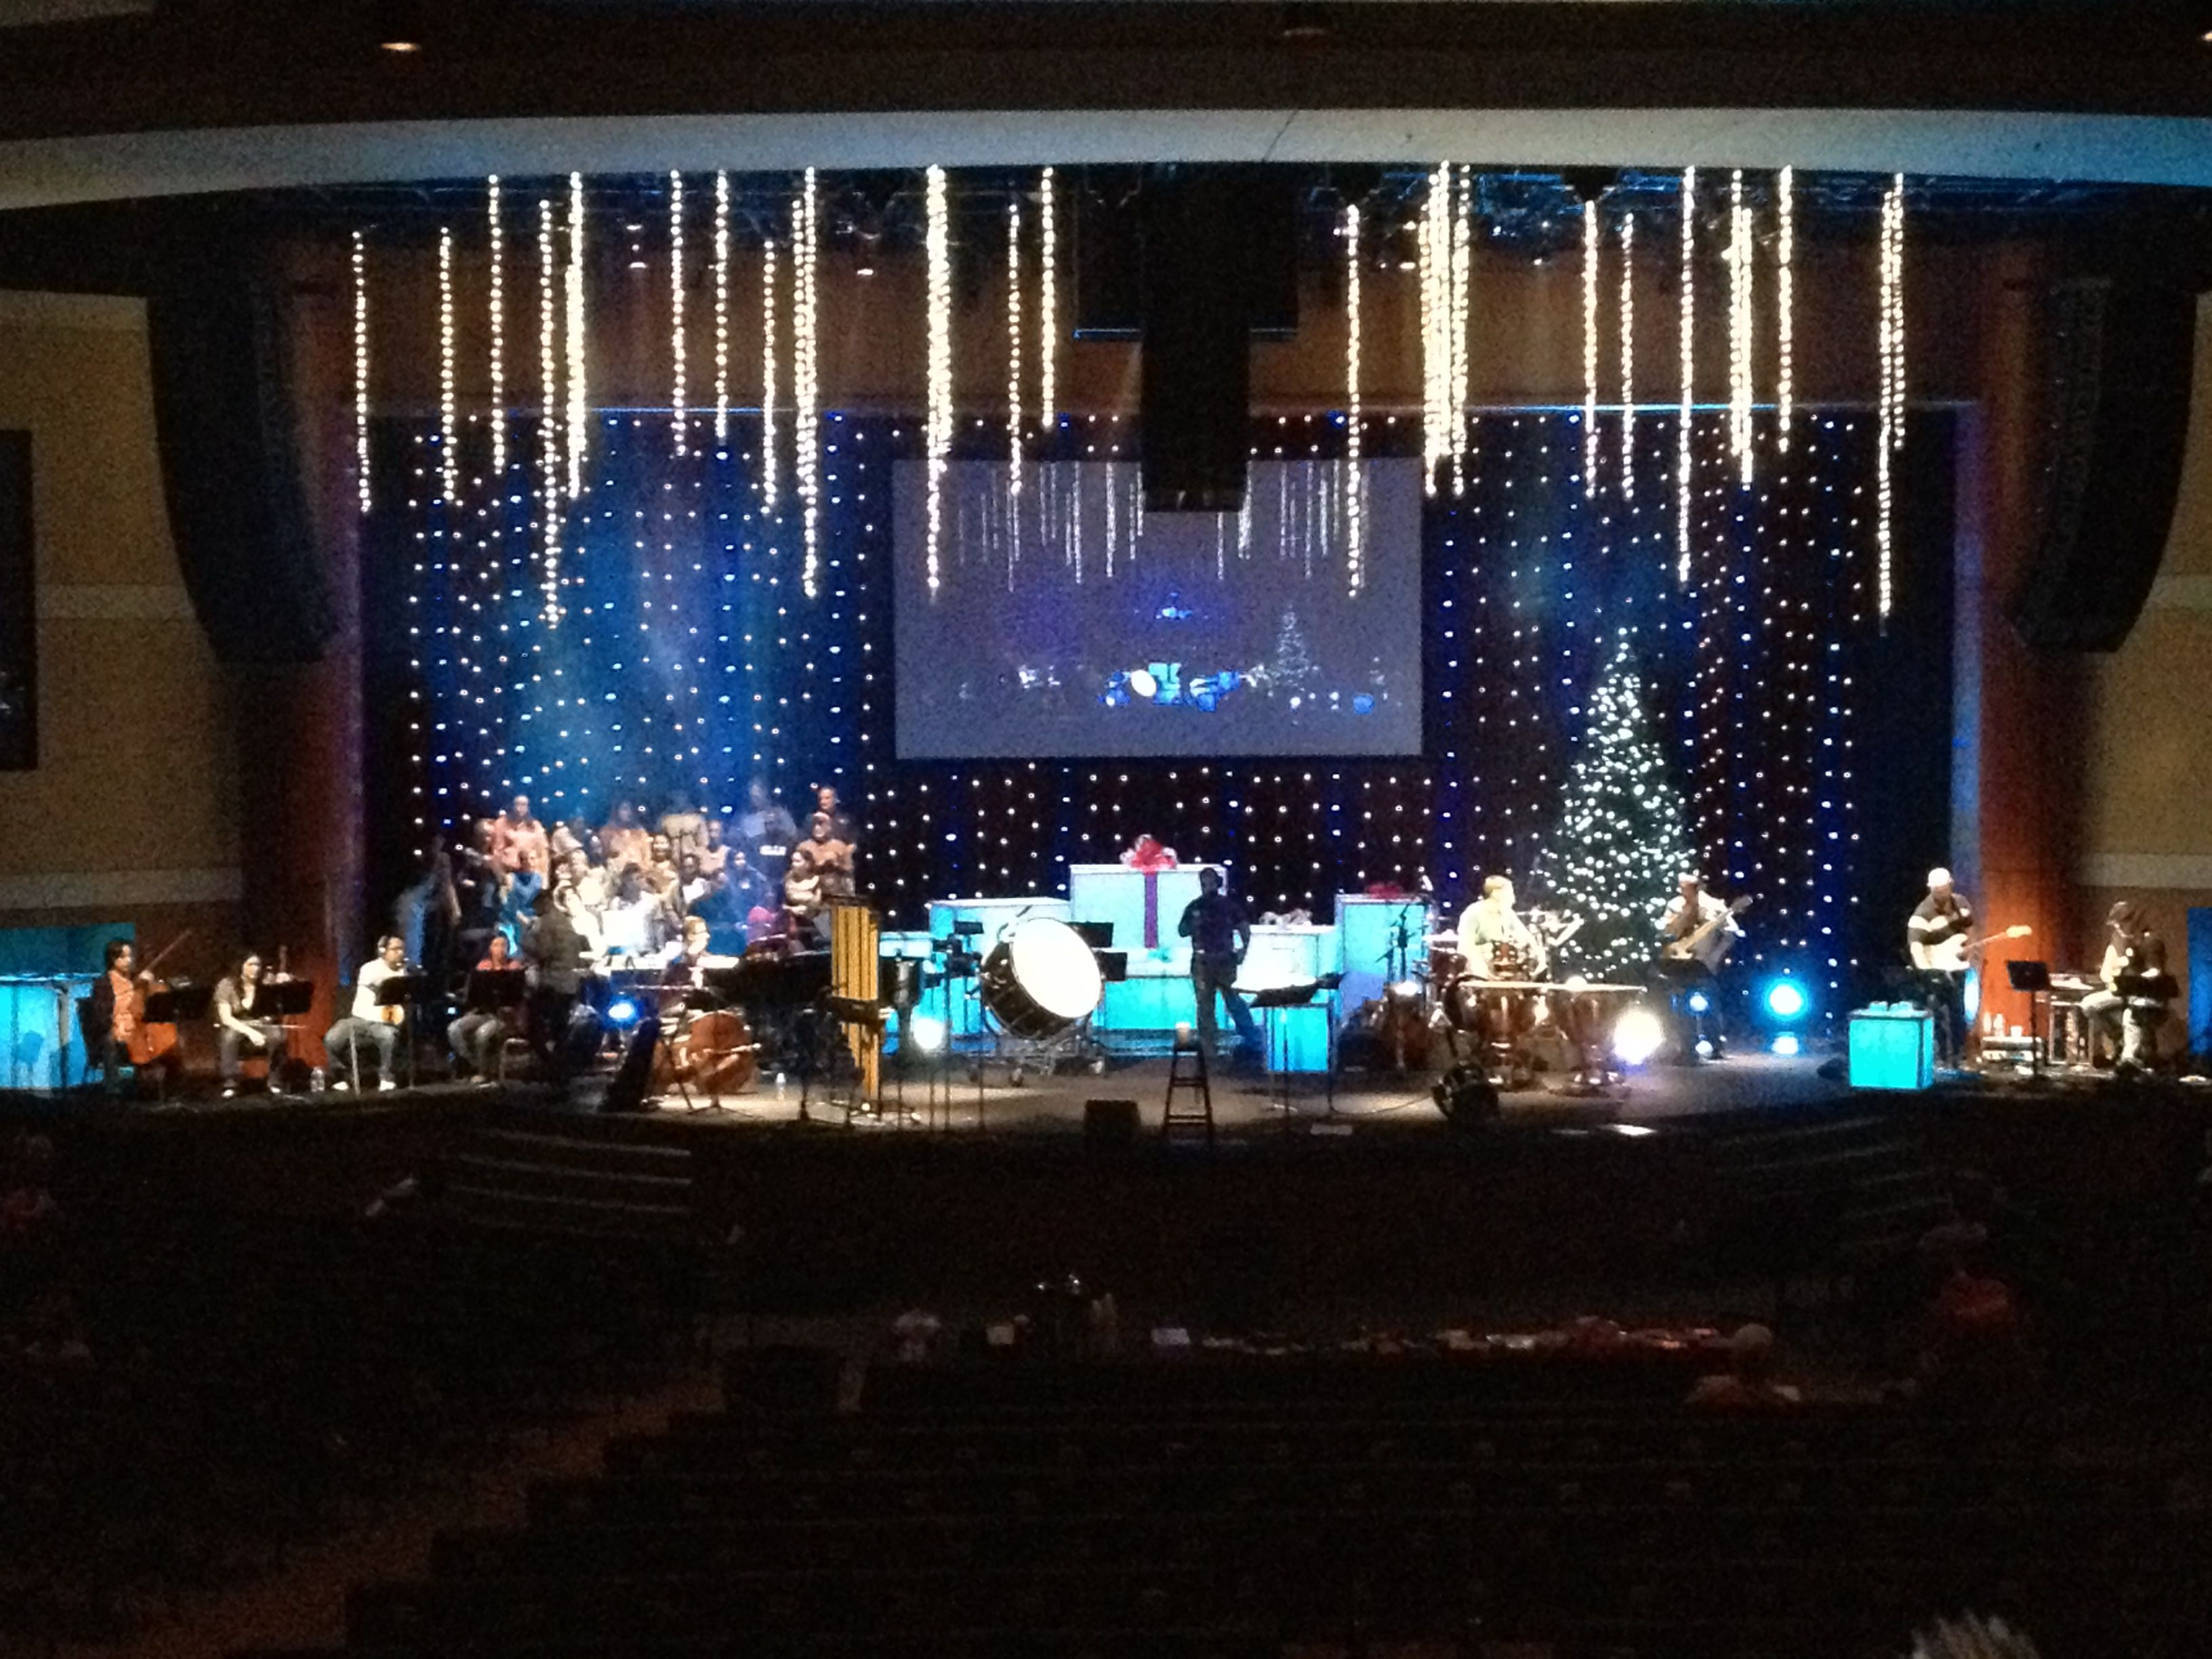 Falling Stars Church Stage Design Ideas Christmas Stage Decorations Church Stage Design Christmas Stage